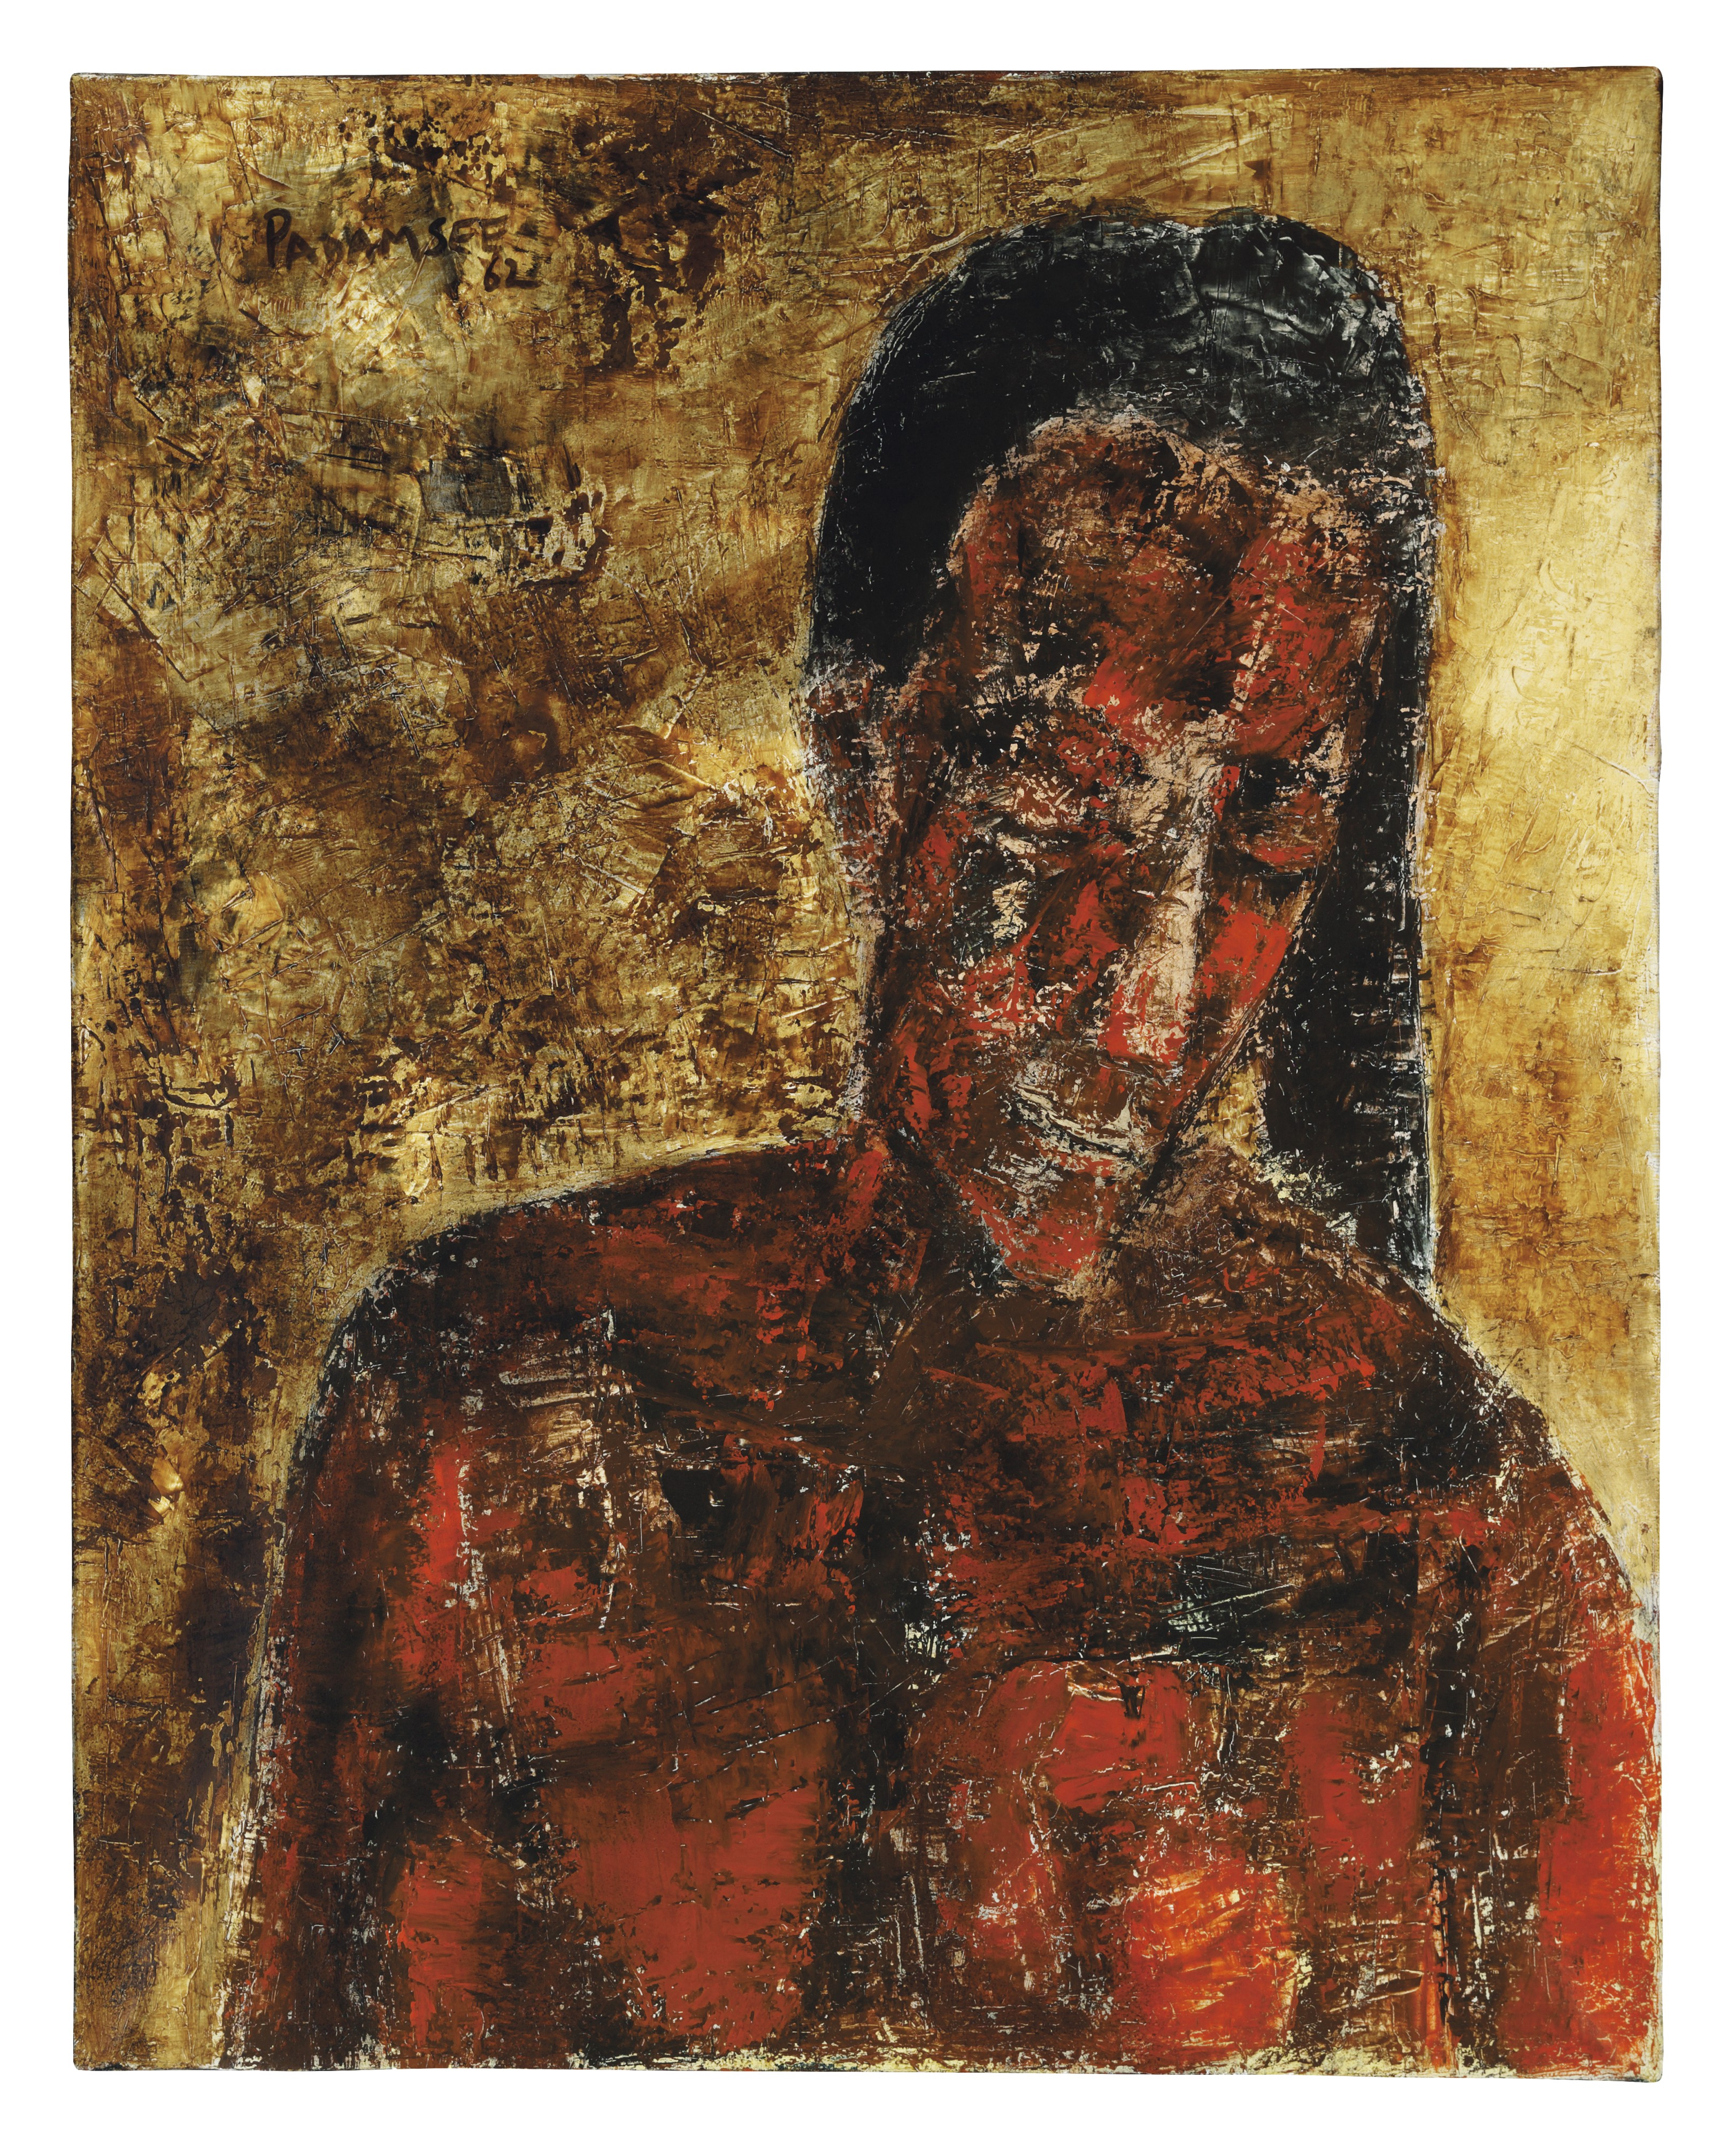 Young Woman with Black Hair and Inclined Head, Akbar Padamsee.  'Jeune Femme Aux Cheveux Noir, La Tête Inclinée' (Young Woman with Black Hair and Inclined Head was painted in 1962 when Akbar Padamsee (b. 1928) returned to Paris for the third time. At that time he was experimenting with light, texture and technique, contrasting dark and luminescent colours with strong brushstrokes. Works from this period are constructed with thick impasto applied by palette knife, creating an almost sculptural effect which accentuates the play of light and shade. (Estimate: $300,000-500,000)